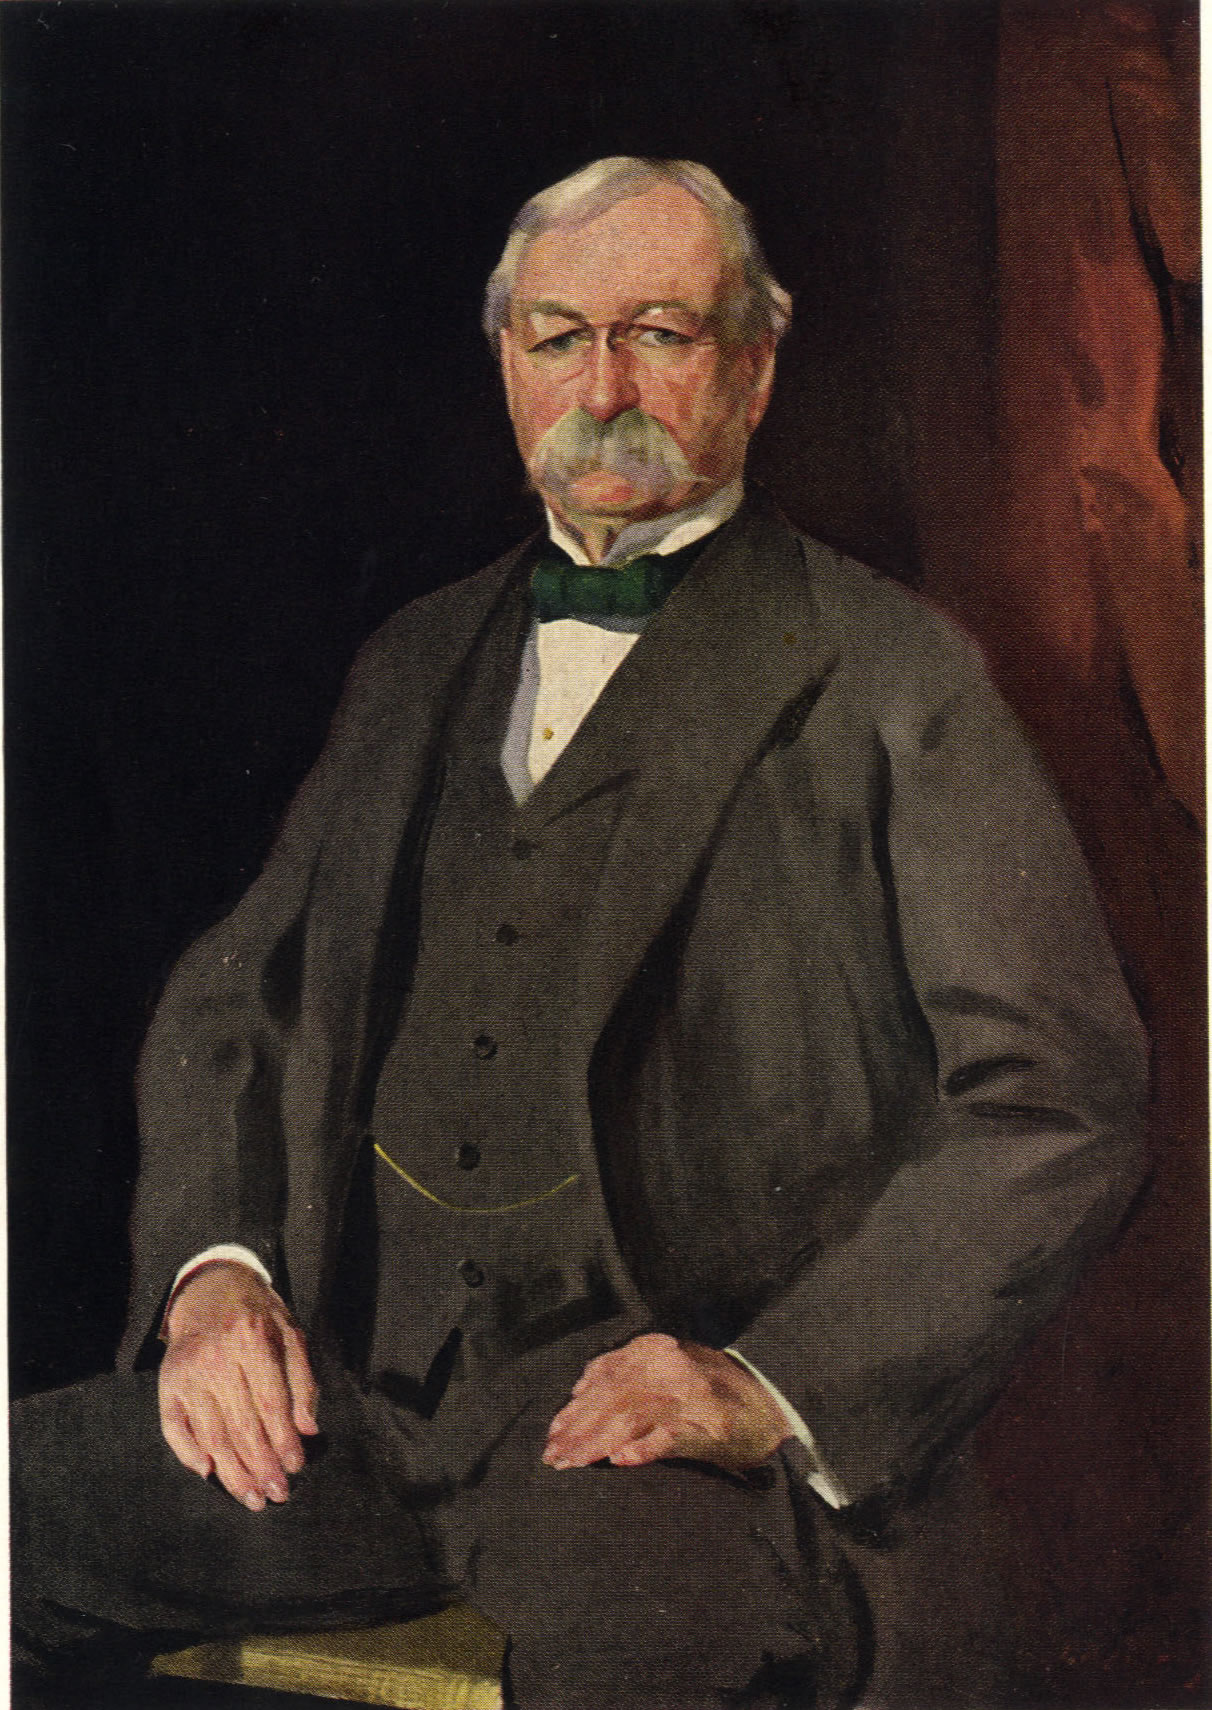 Portrait of N.W. Ayer